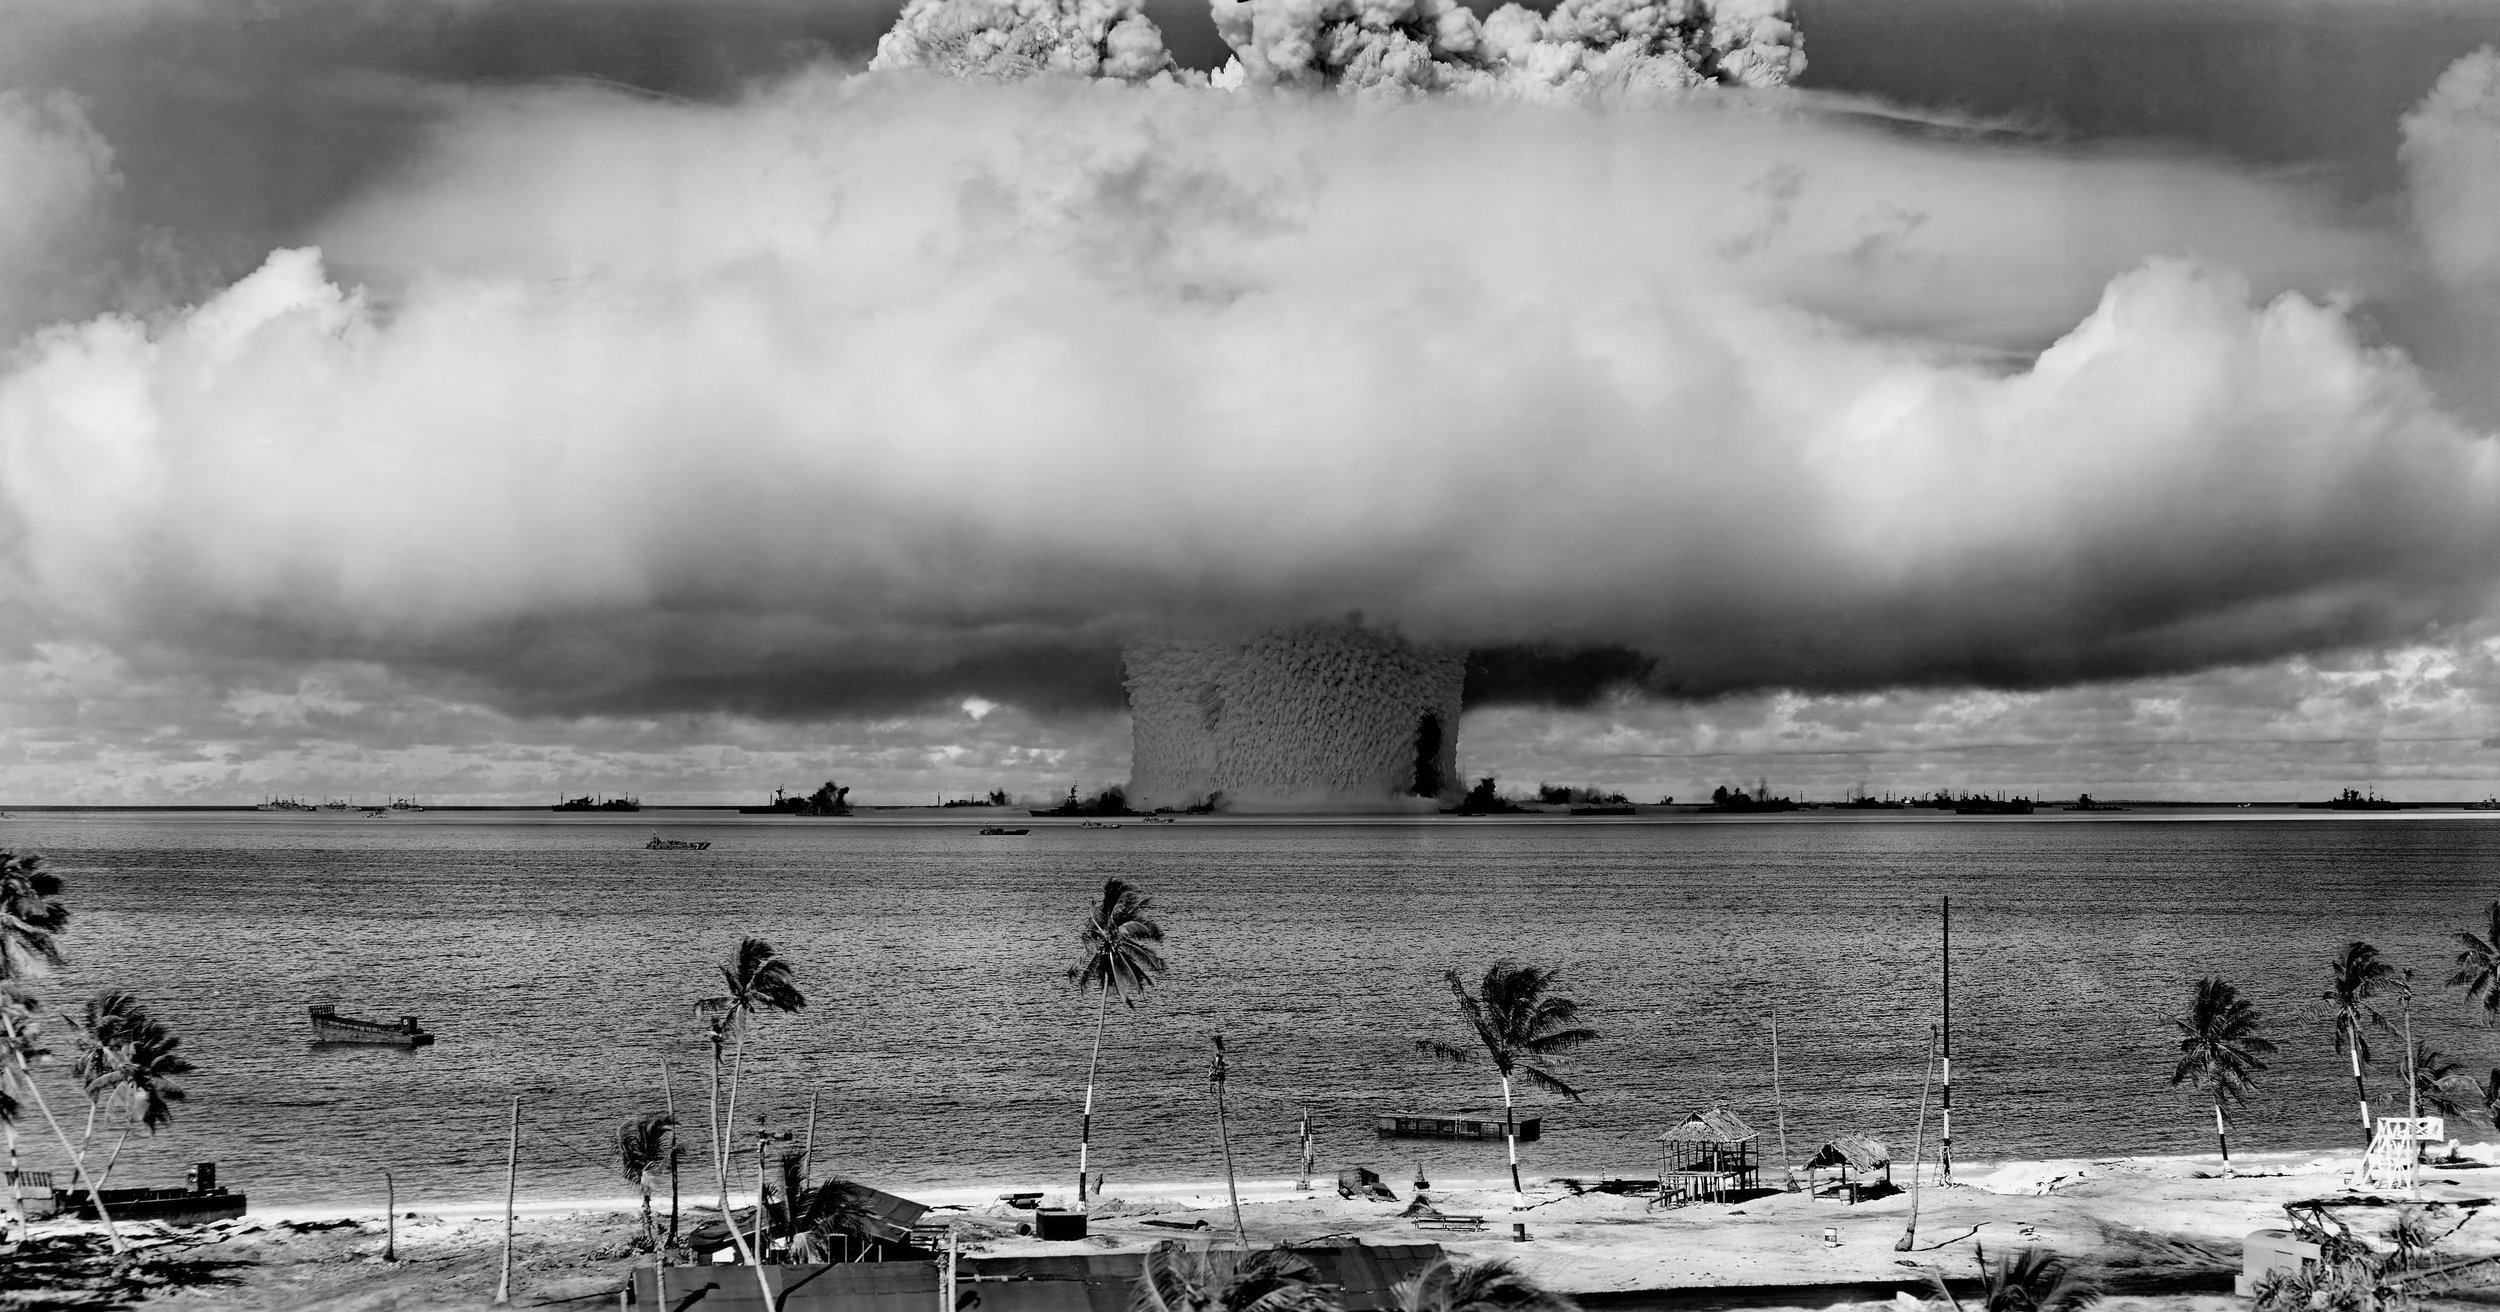 atomic-bomb-beach-black-and-white-73909.jpg